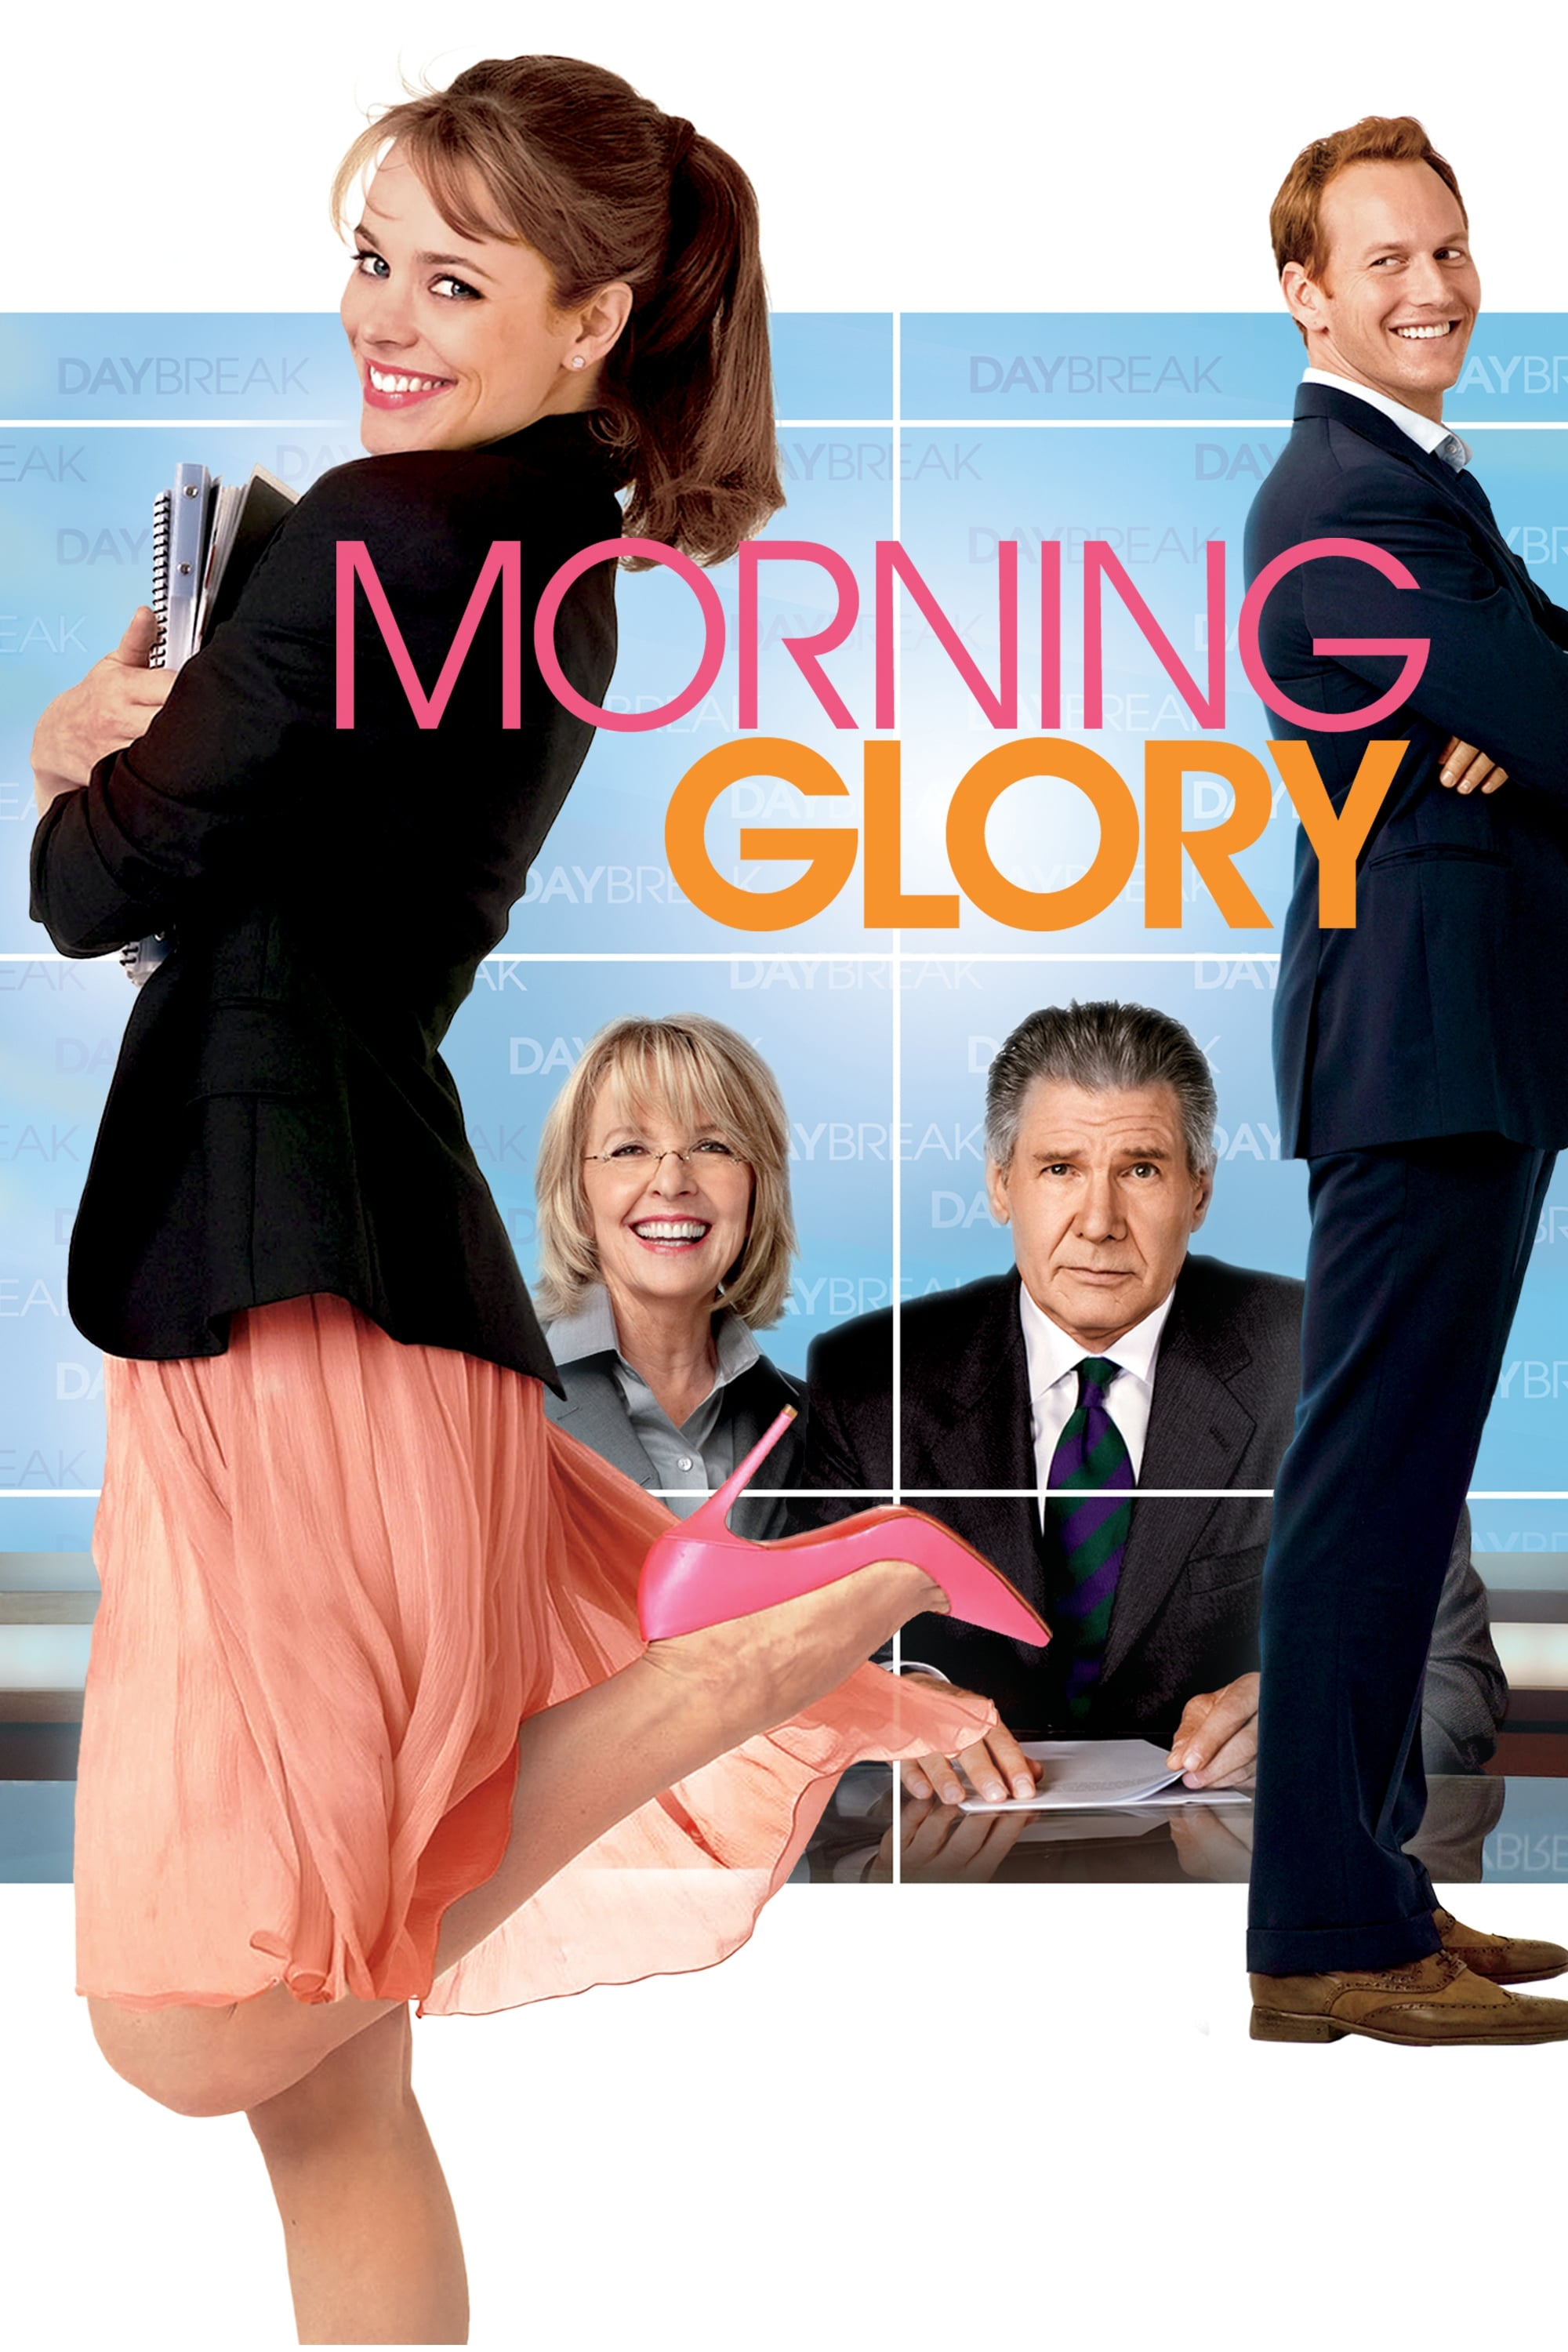 Morning Glory (2010) WEB-Rip 1080p [2.8 GB] 720p [1.1 GB] 480p [502 MB] [Hindi DD 5.1 + English DD 5.1] | G-Drive